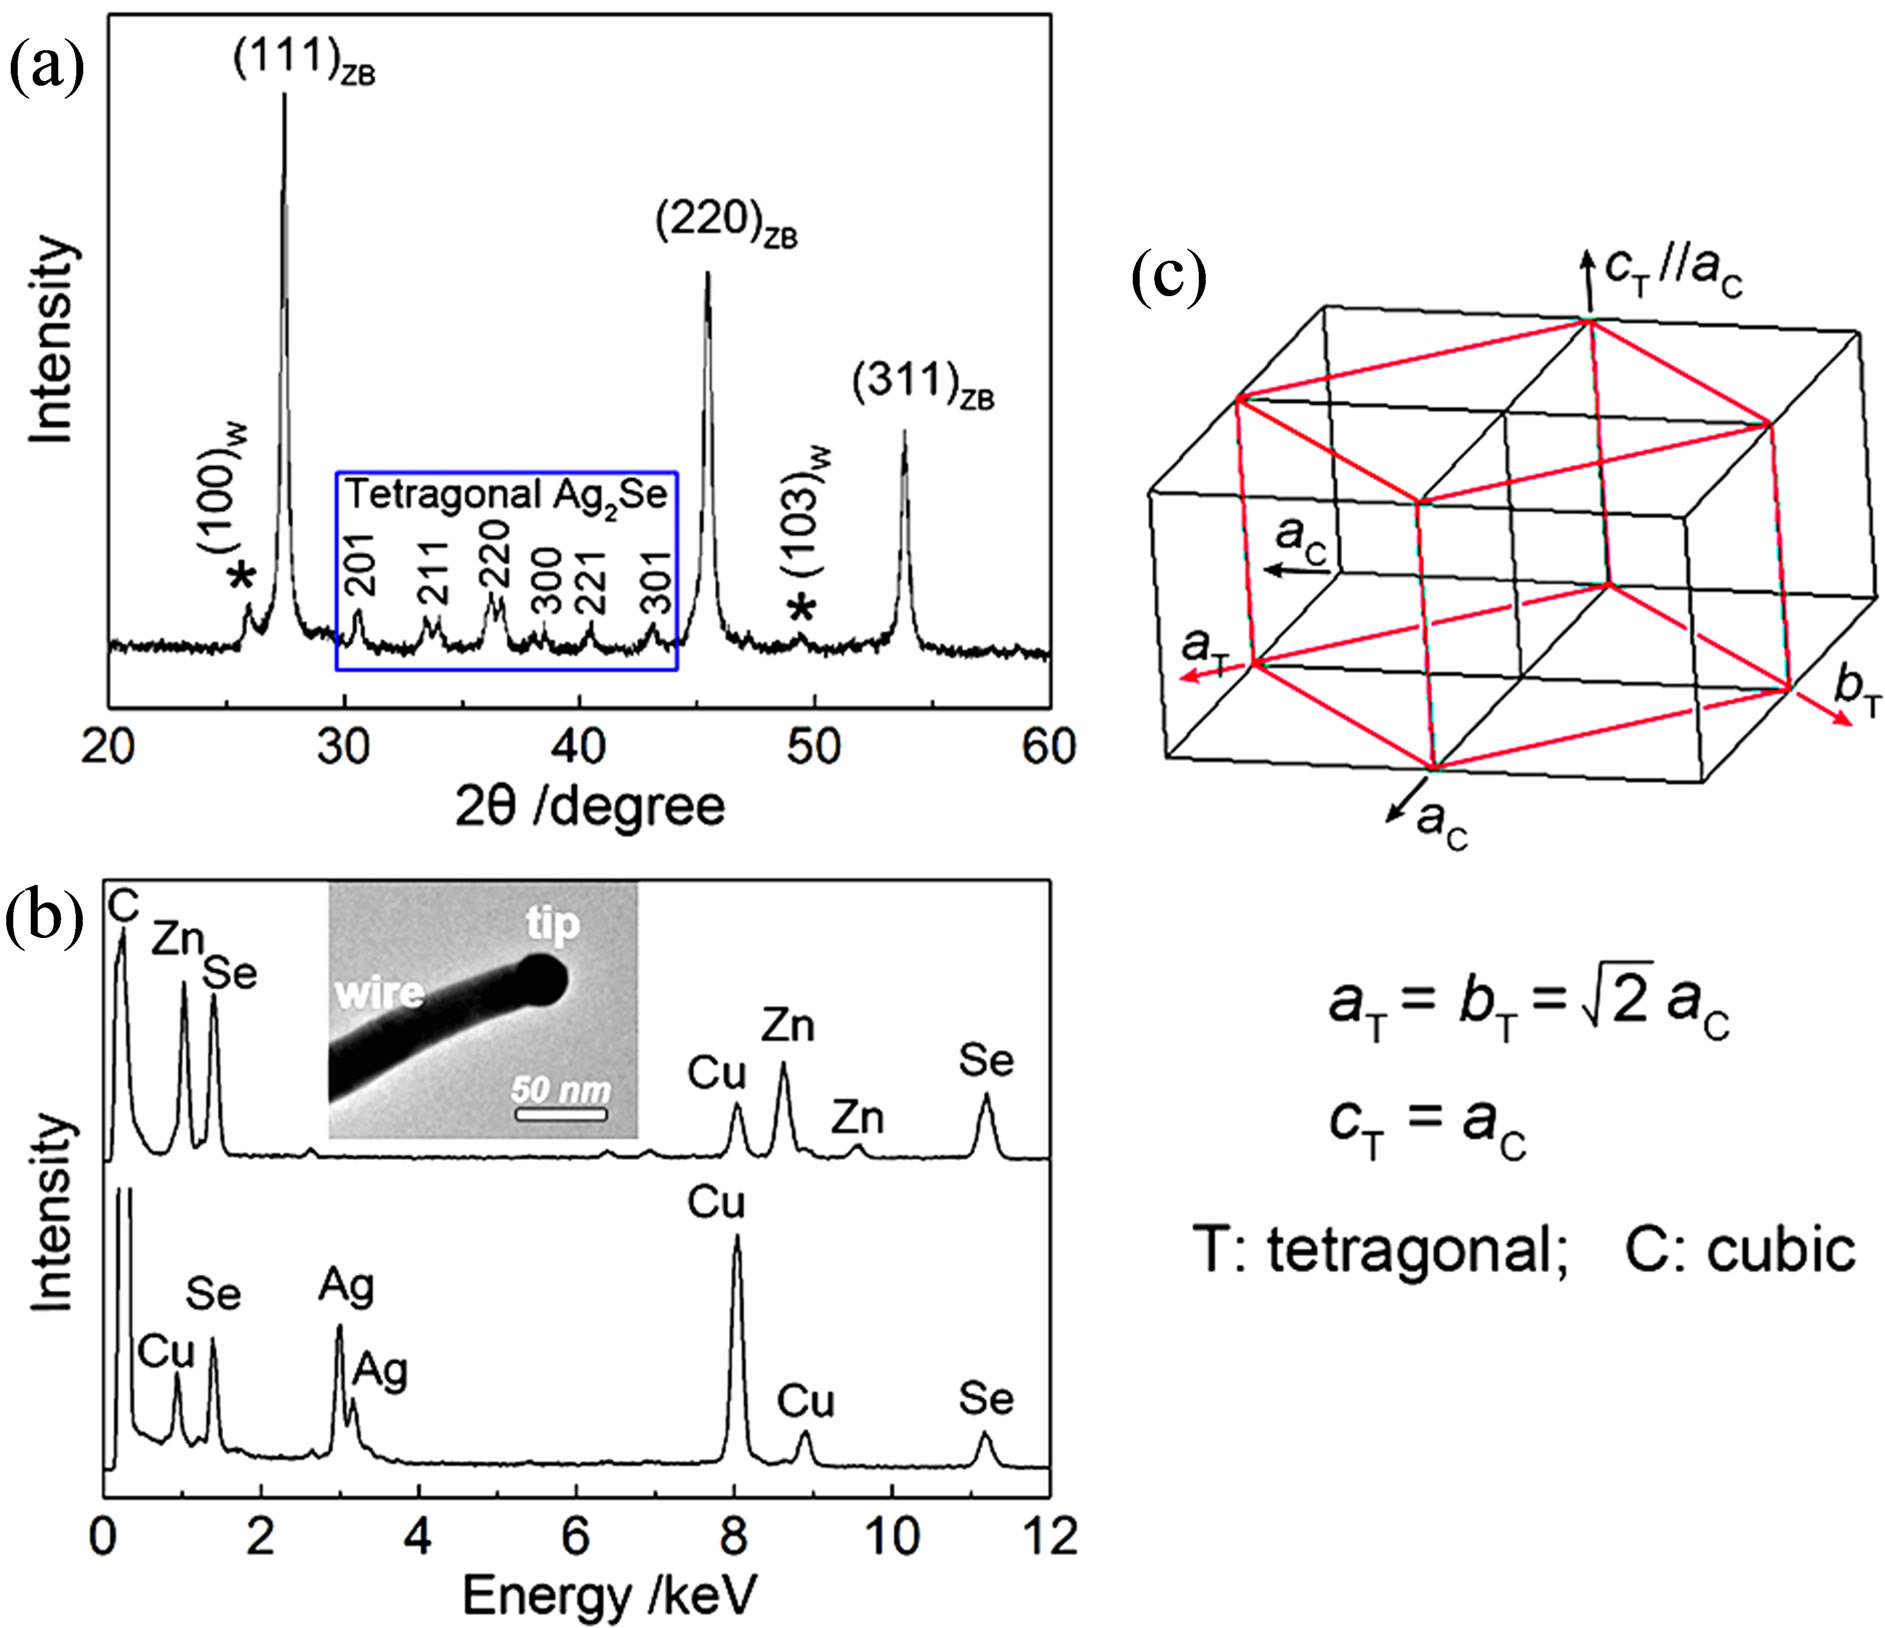 Wet Chemical Synthesis And Optical Property Of Znse Nanowires By Ag Qing Wire Diagram A Xrd Pattern The As Prepared B Eds Spectra Recorded On Ag2se Catalytic Tip Insets C Schematic